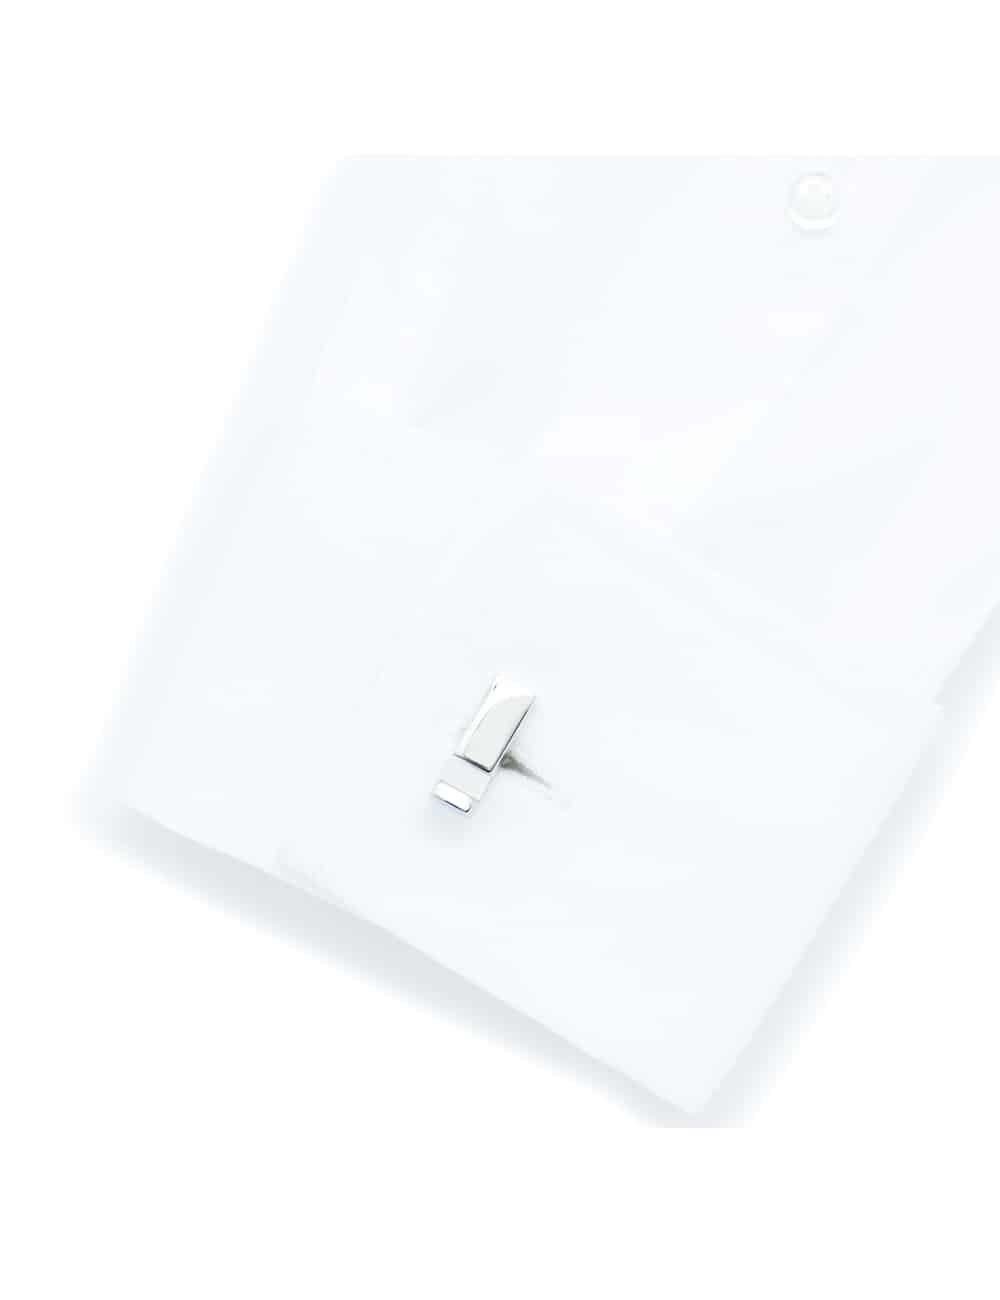 Chrome silver cuboid bar cufflink with white pearl C131FP-044